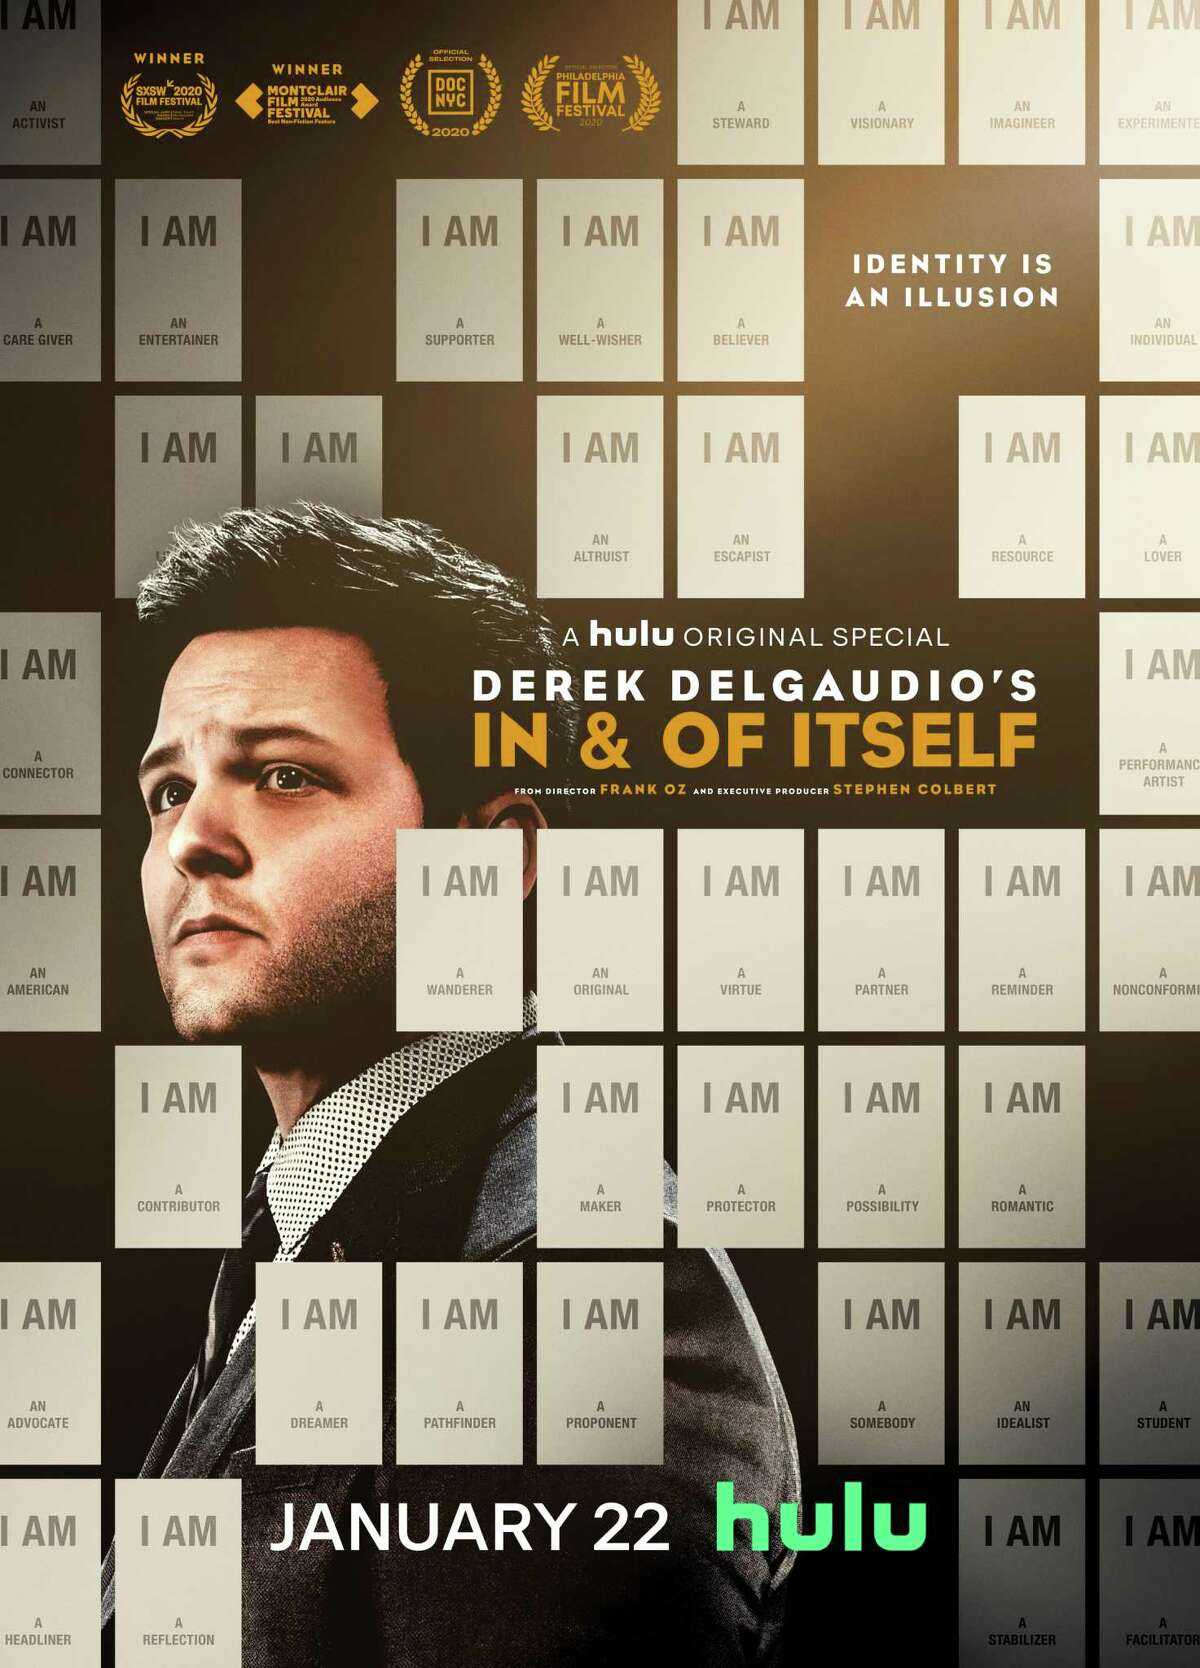 """The poster for the Hulu movie """"In & of Itself,"""" starring Derek DelGaudio and directed by Frank Oz."""